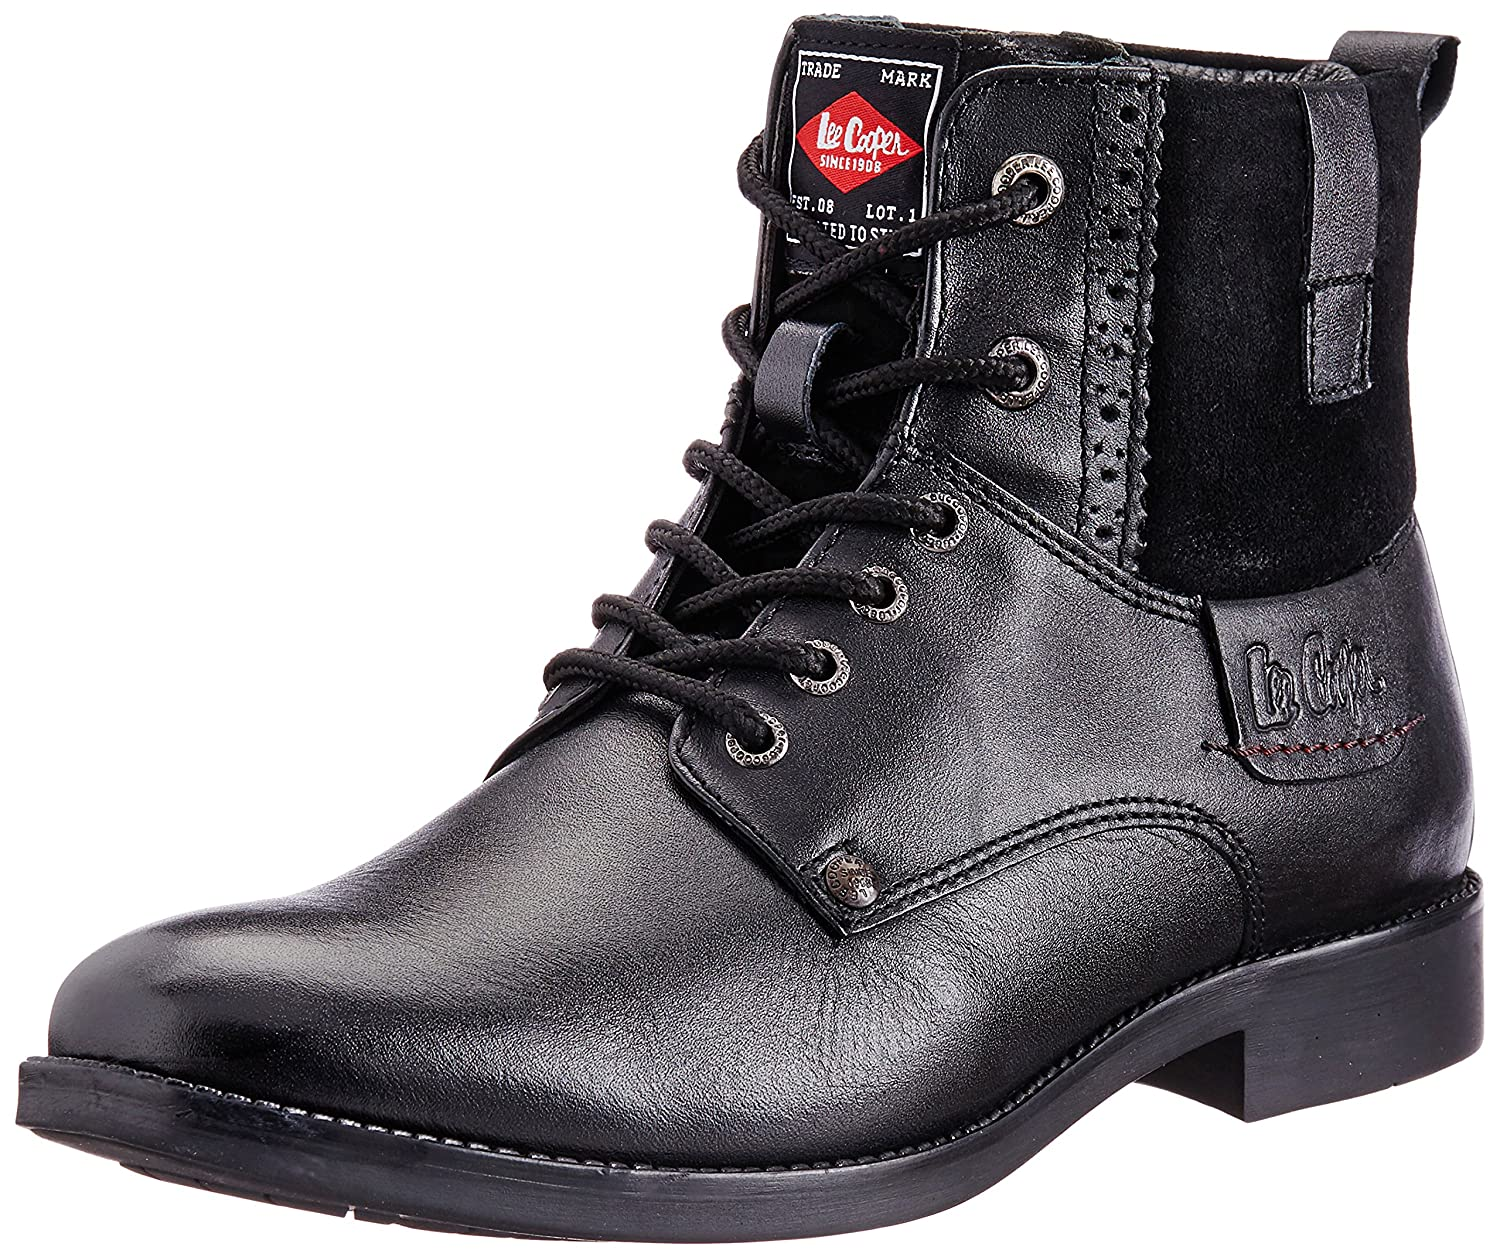 Buy Lee Cooper Men's Leather Boots at